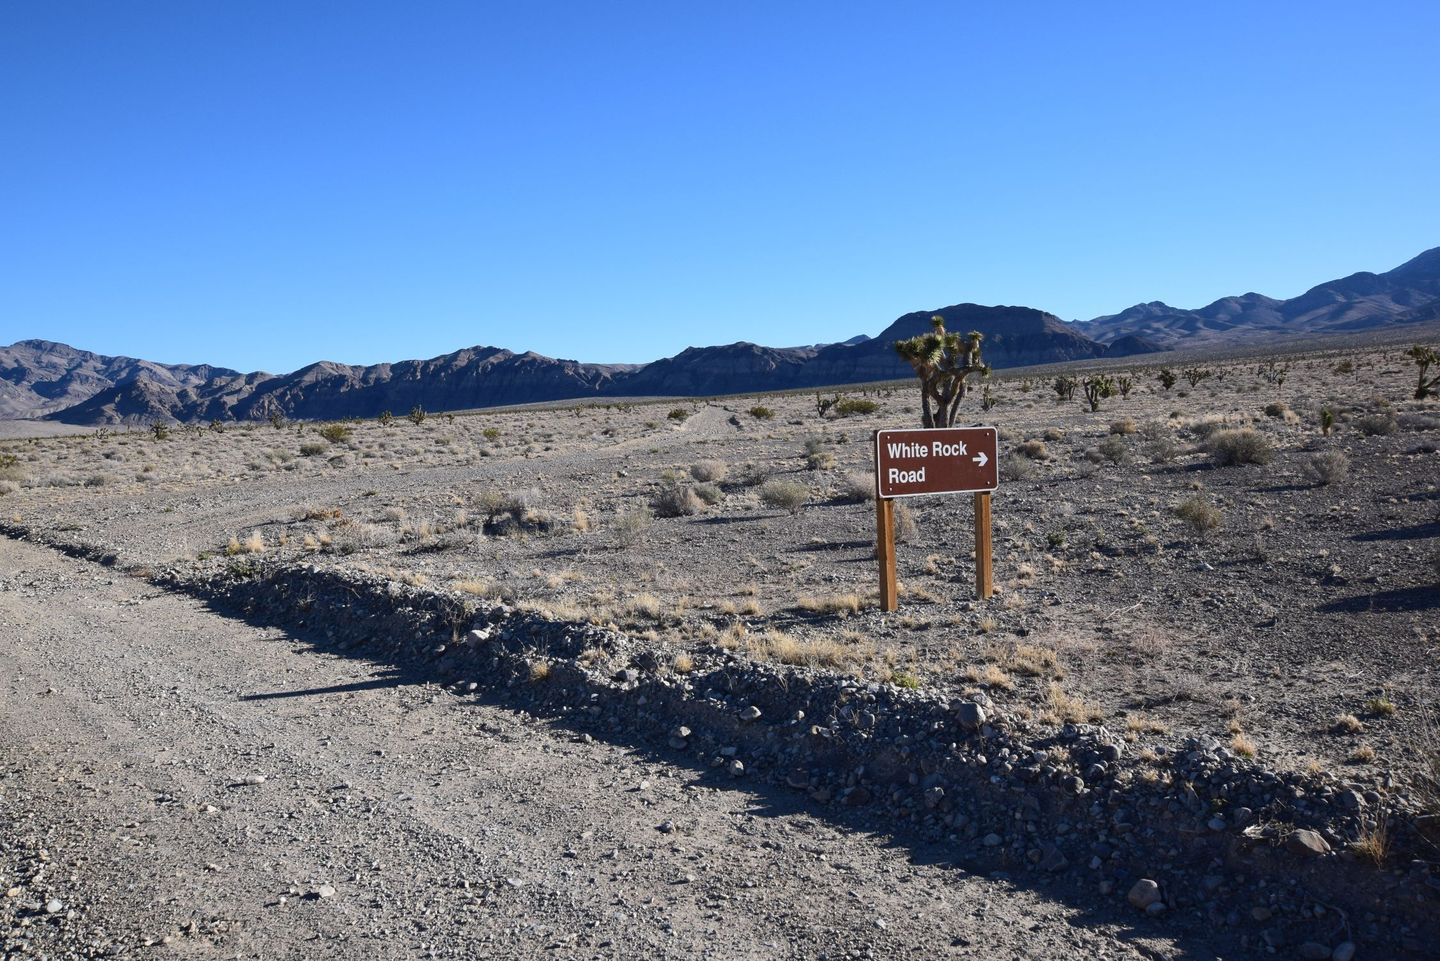 Alamo Road - Waypoint 7: White Rock Road